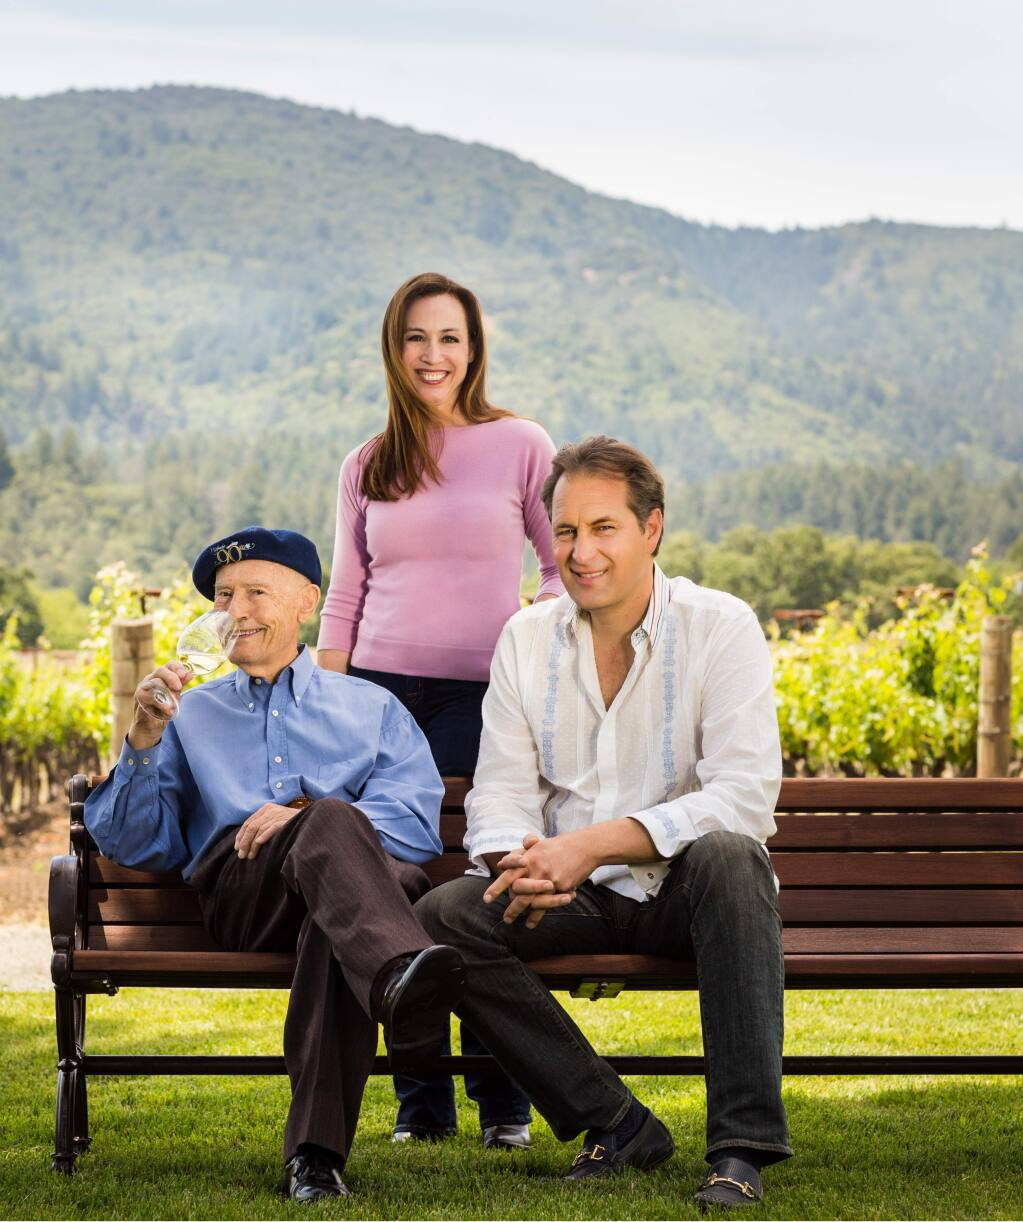 Miljenko Grgich, left, co-founded Grgich Hills Estate Winery in Napa Valley in in 1977 and named his daughter Violet president in November 2017. Ivo Jeramaz, right, is vice president and winemaker. (courtesy of Grgich Hills Estate)